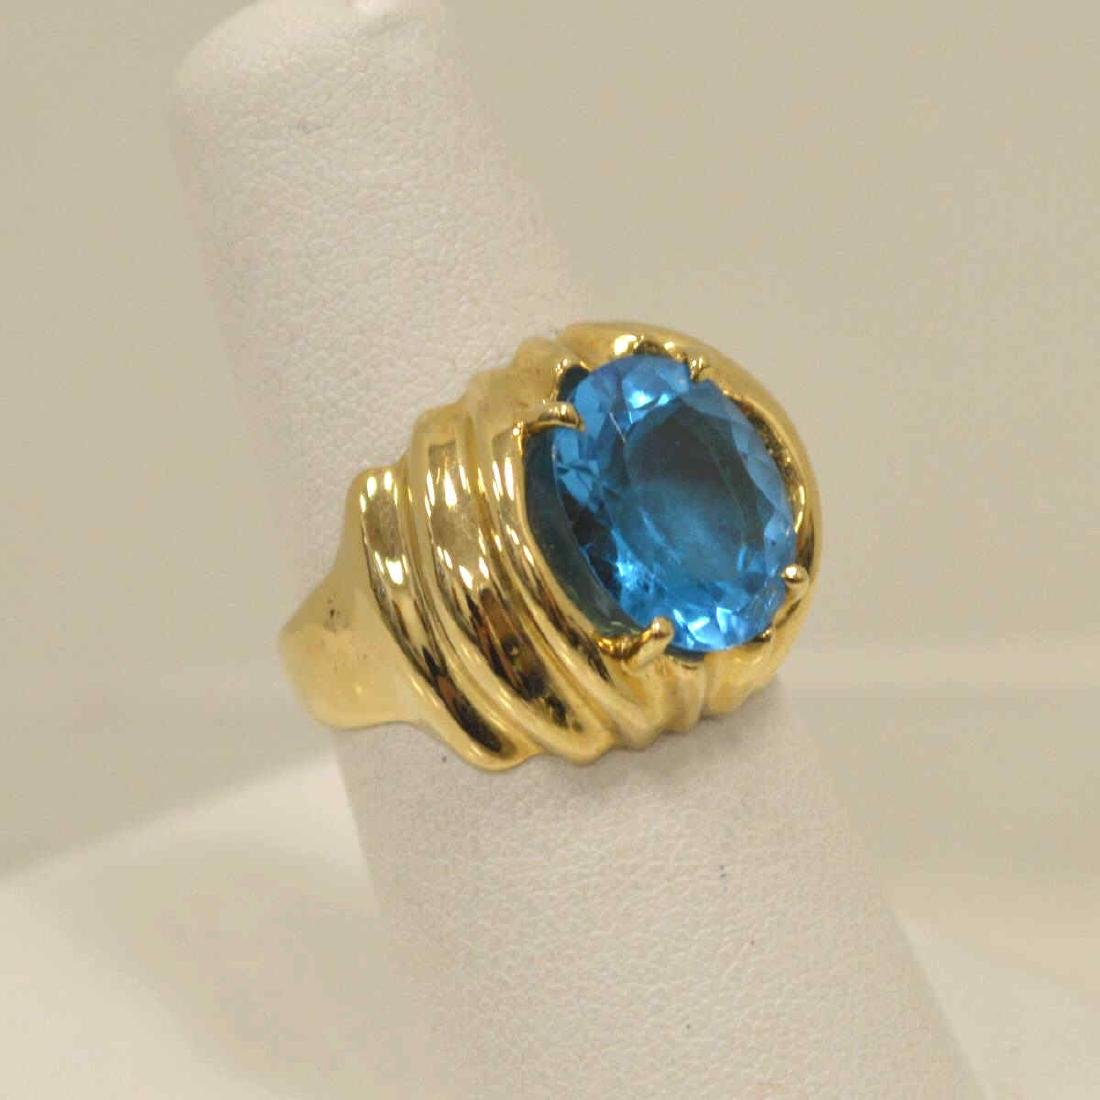 14kt yellow gold blue topaz ring - 2